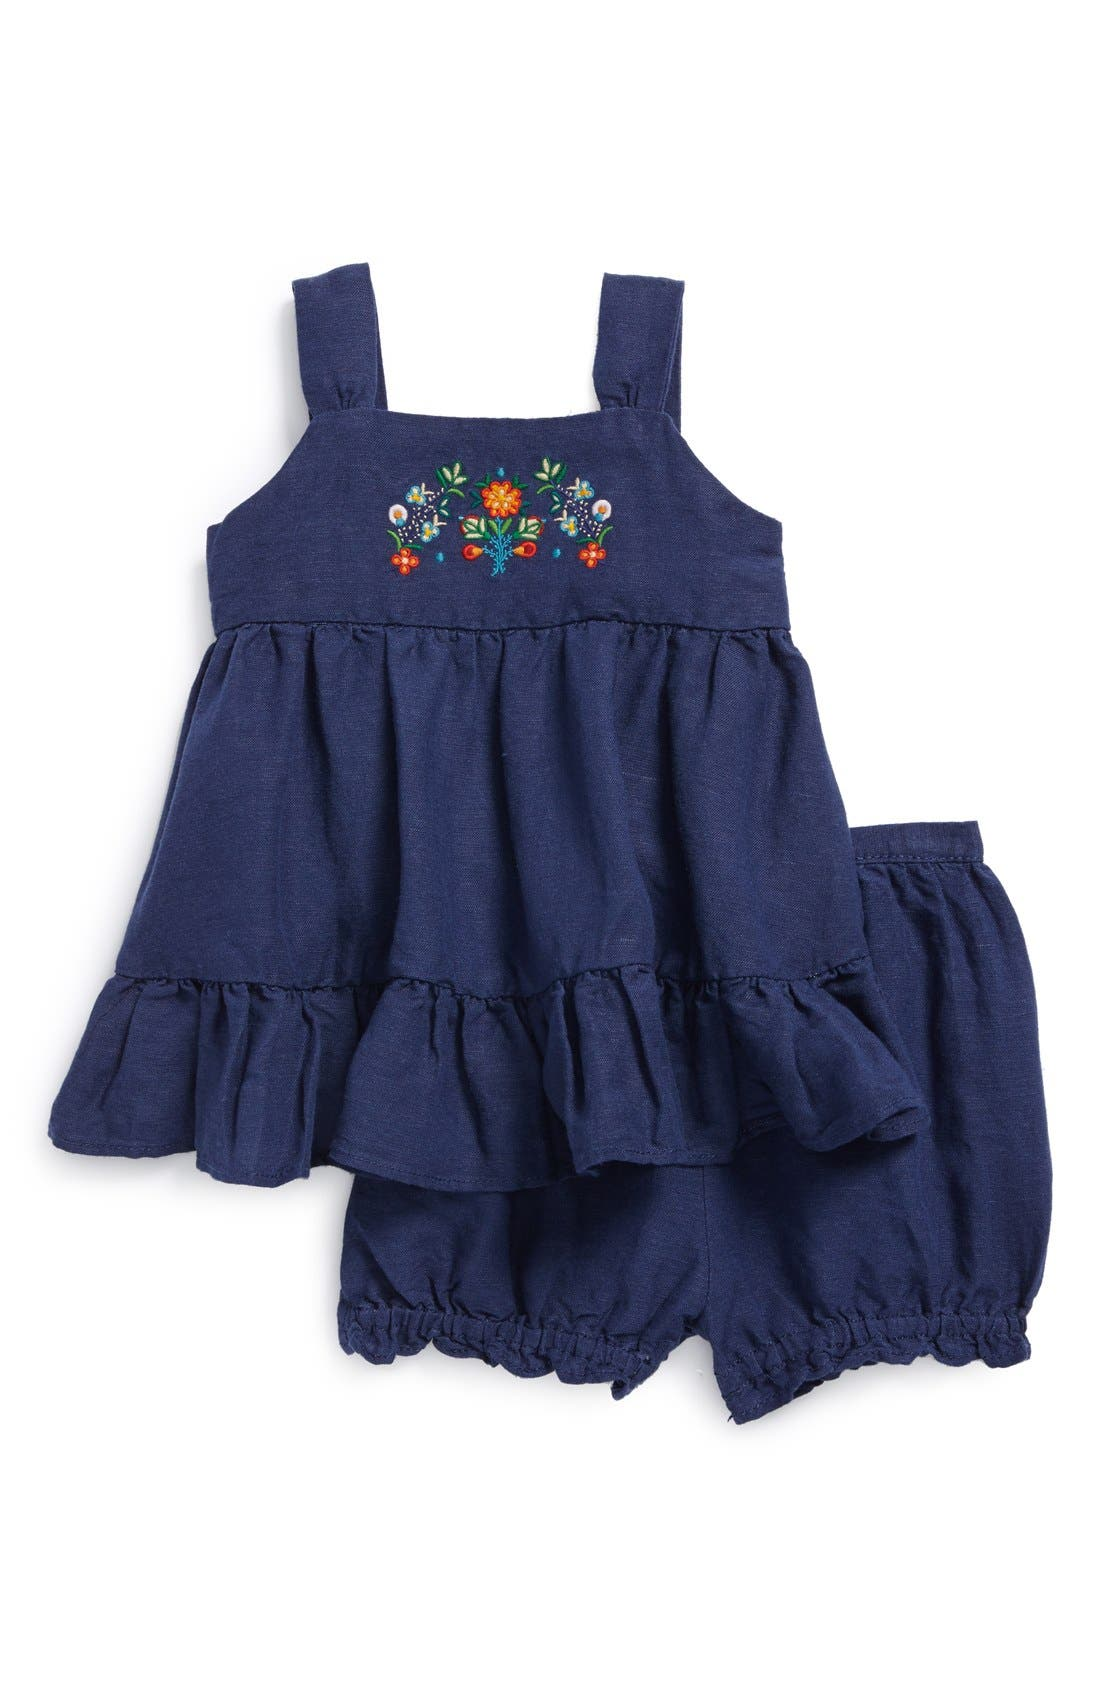 Alternate Image 1 Selected - Ralph Lauren Embroidered Dress & Diaper Cover (Baby Girls)